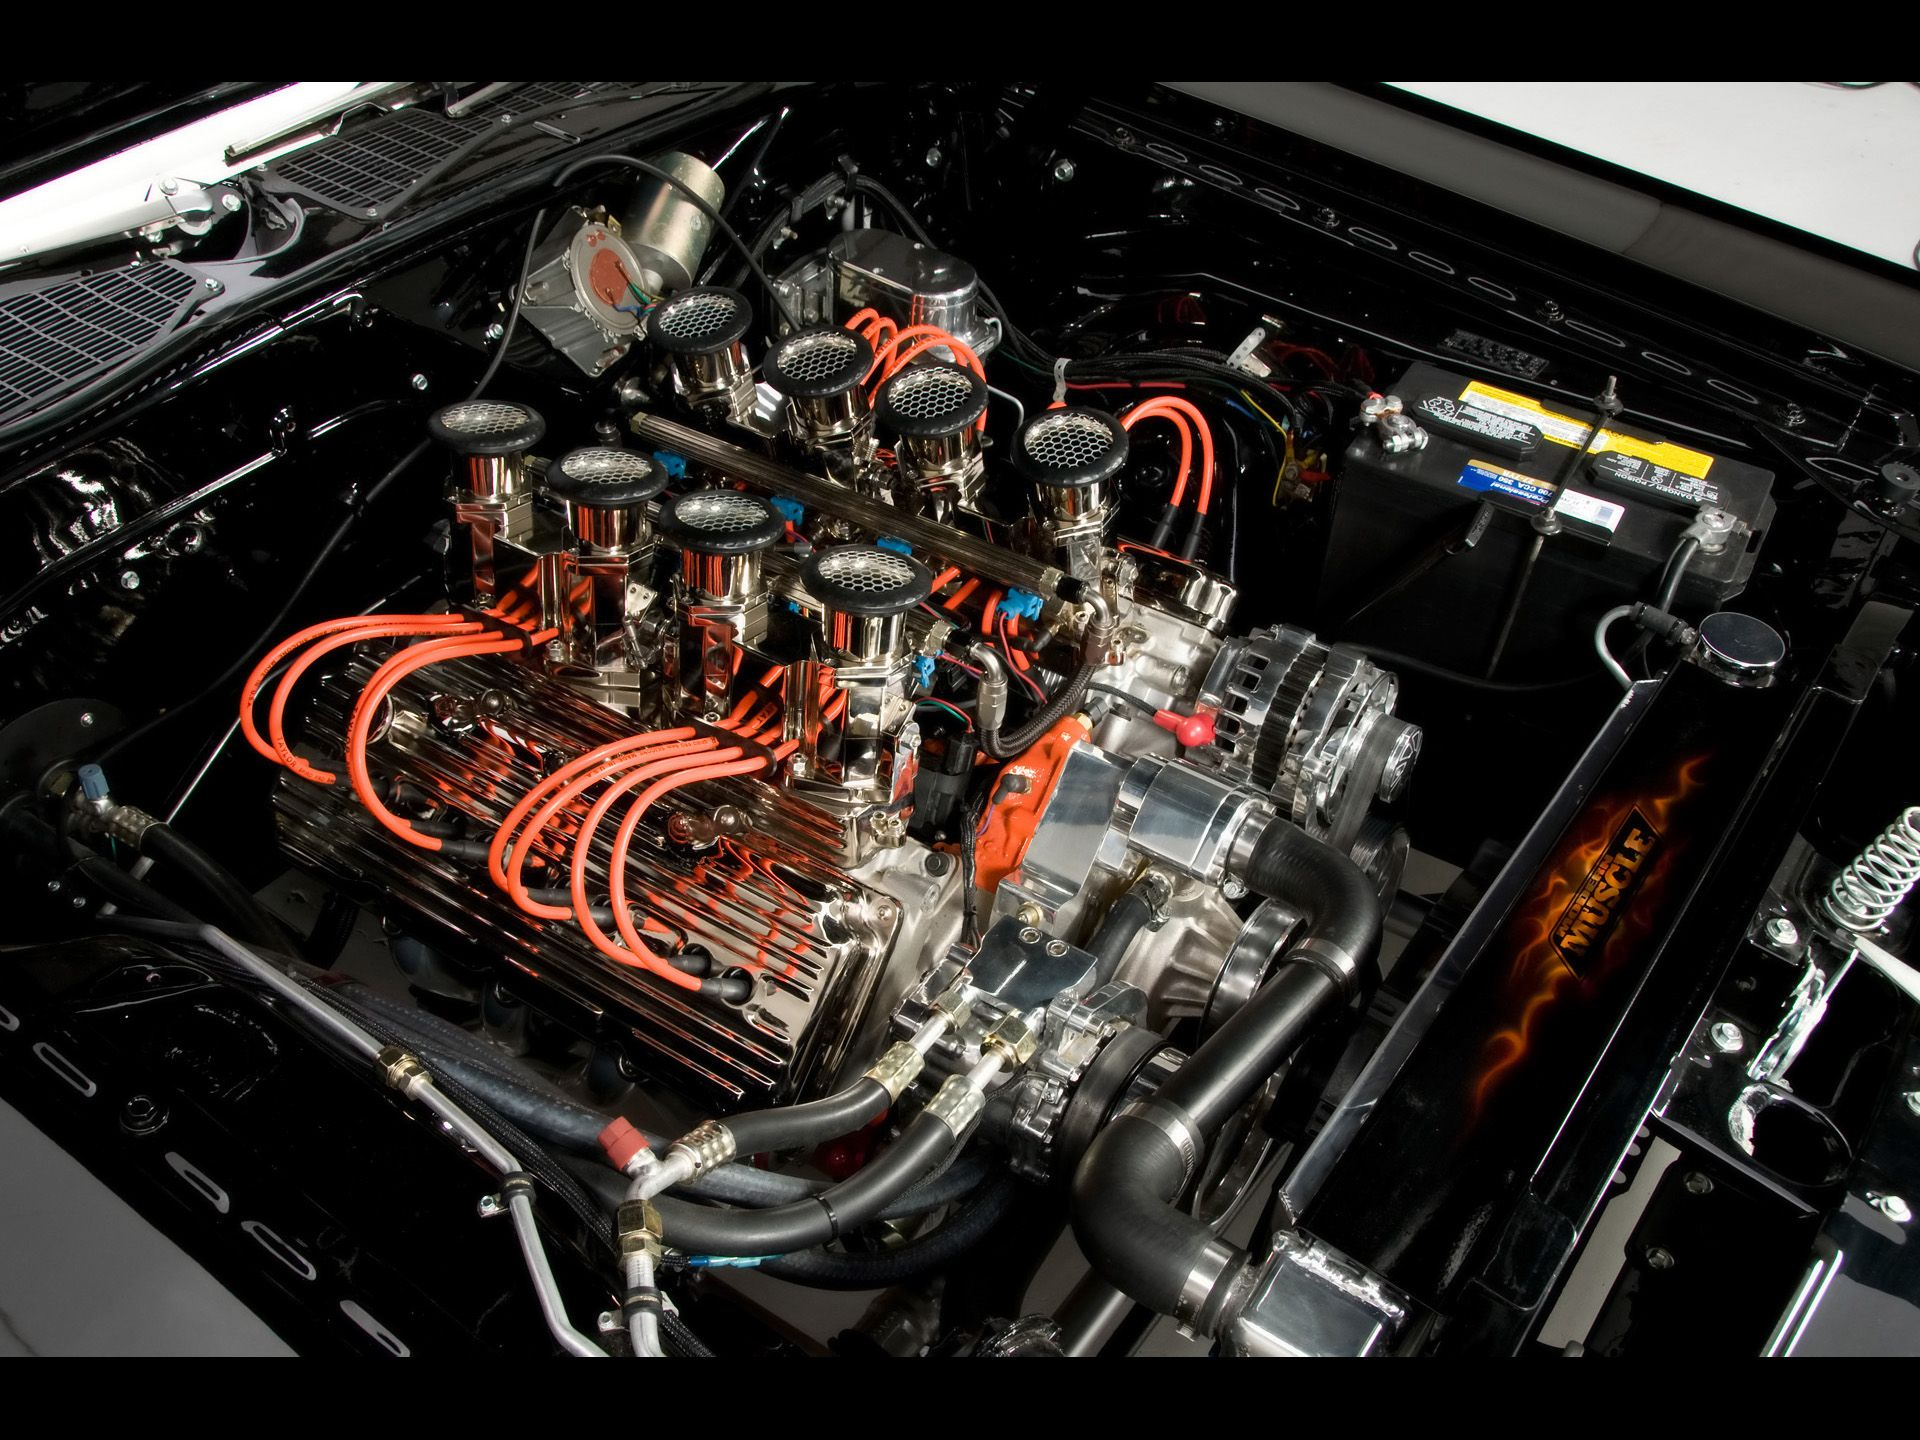 Car Engine Wallpapers Top Free Car Engine Backgrounds